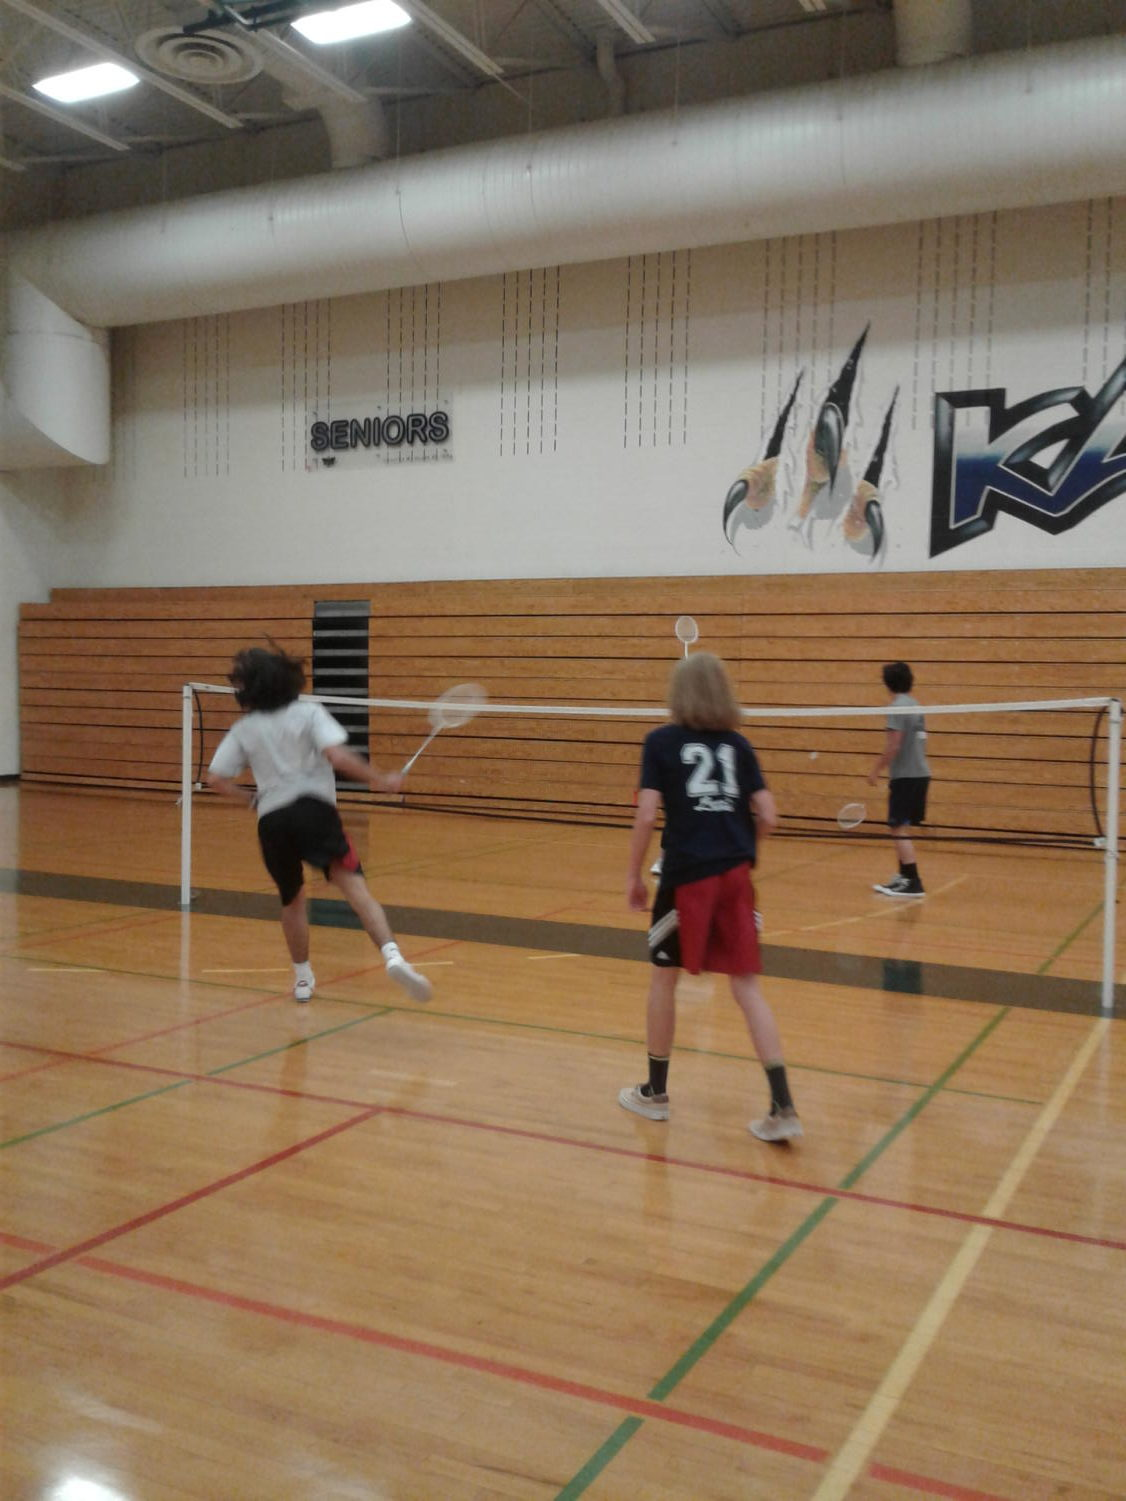 Connor Dalrymple, Jake Stinson, Allison Raulie, and Chase Giglio play an intense game of badminton.